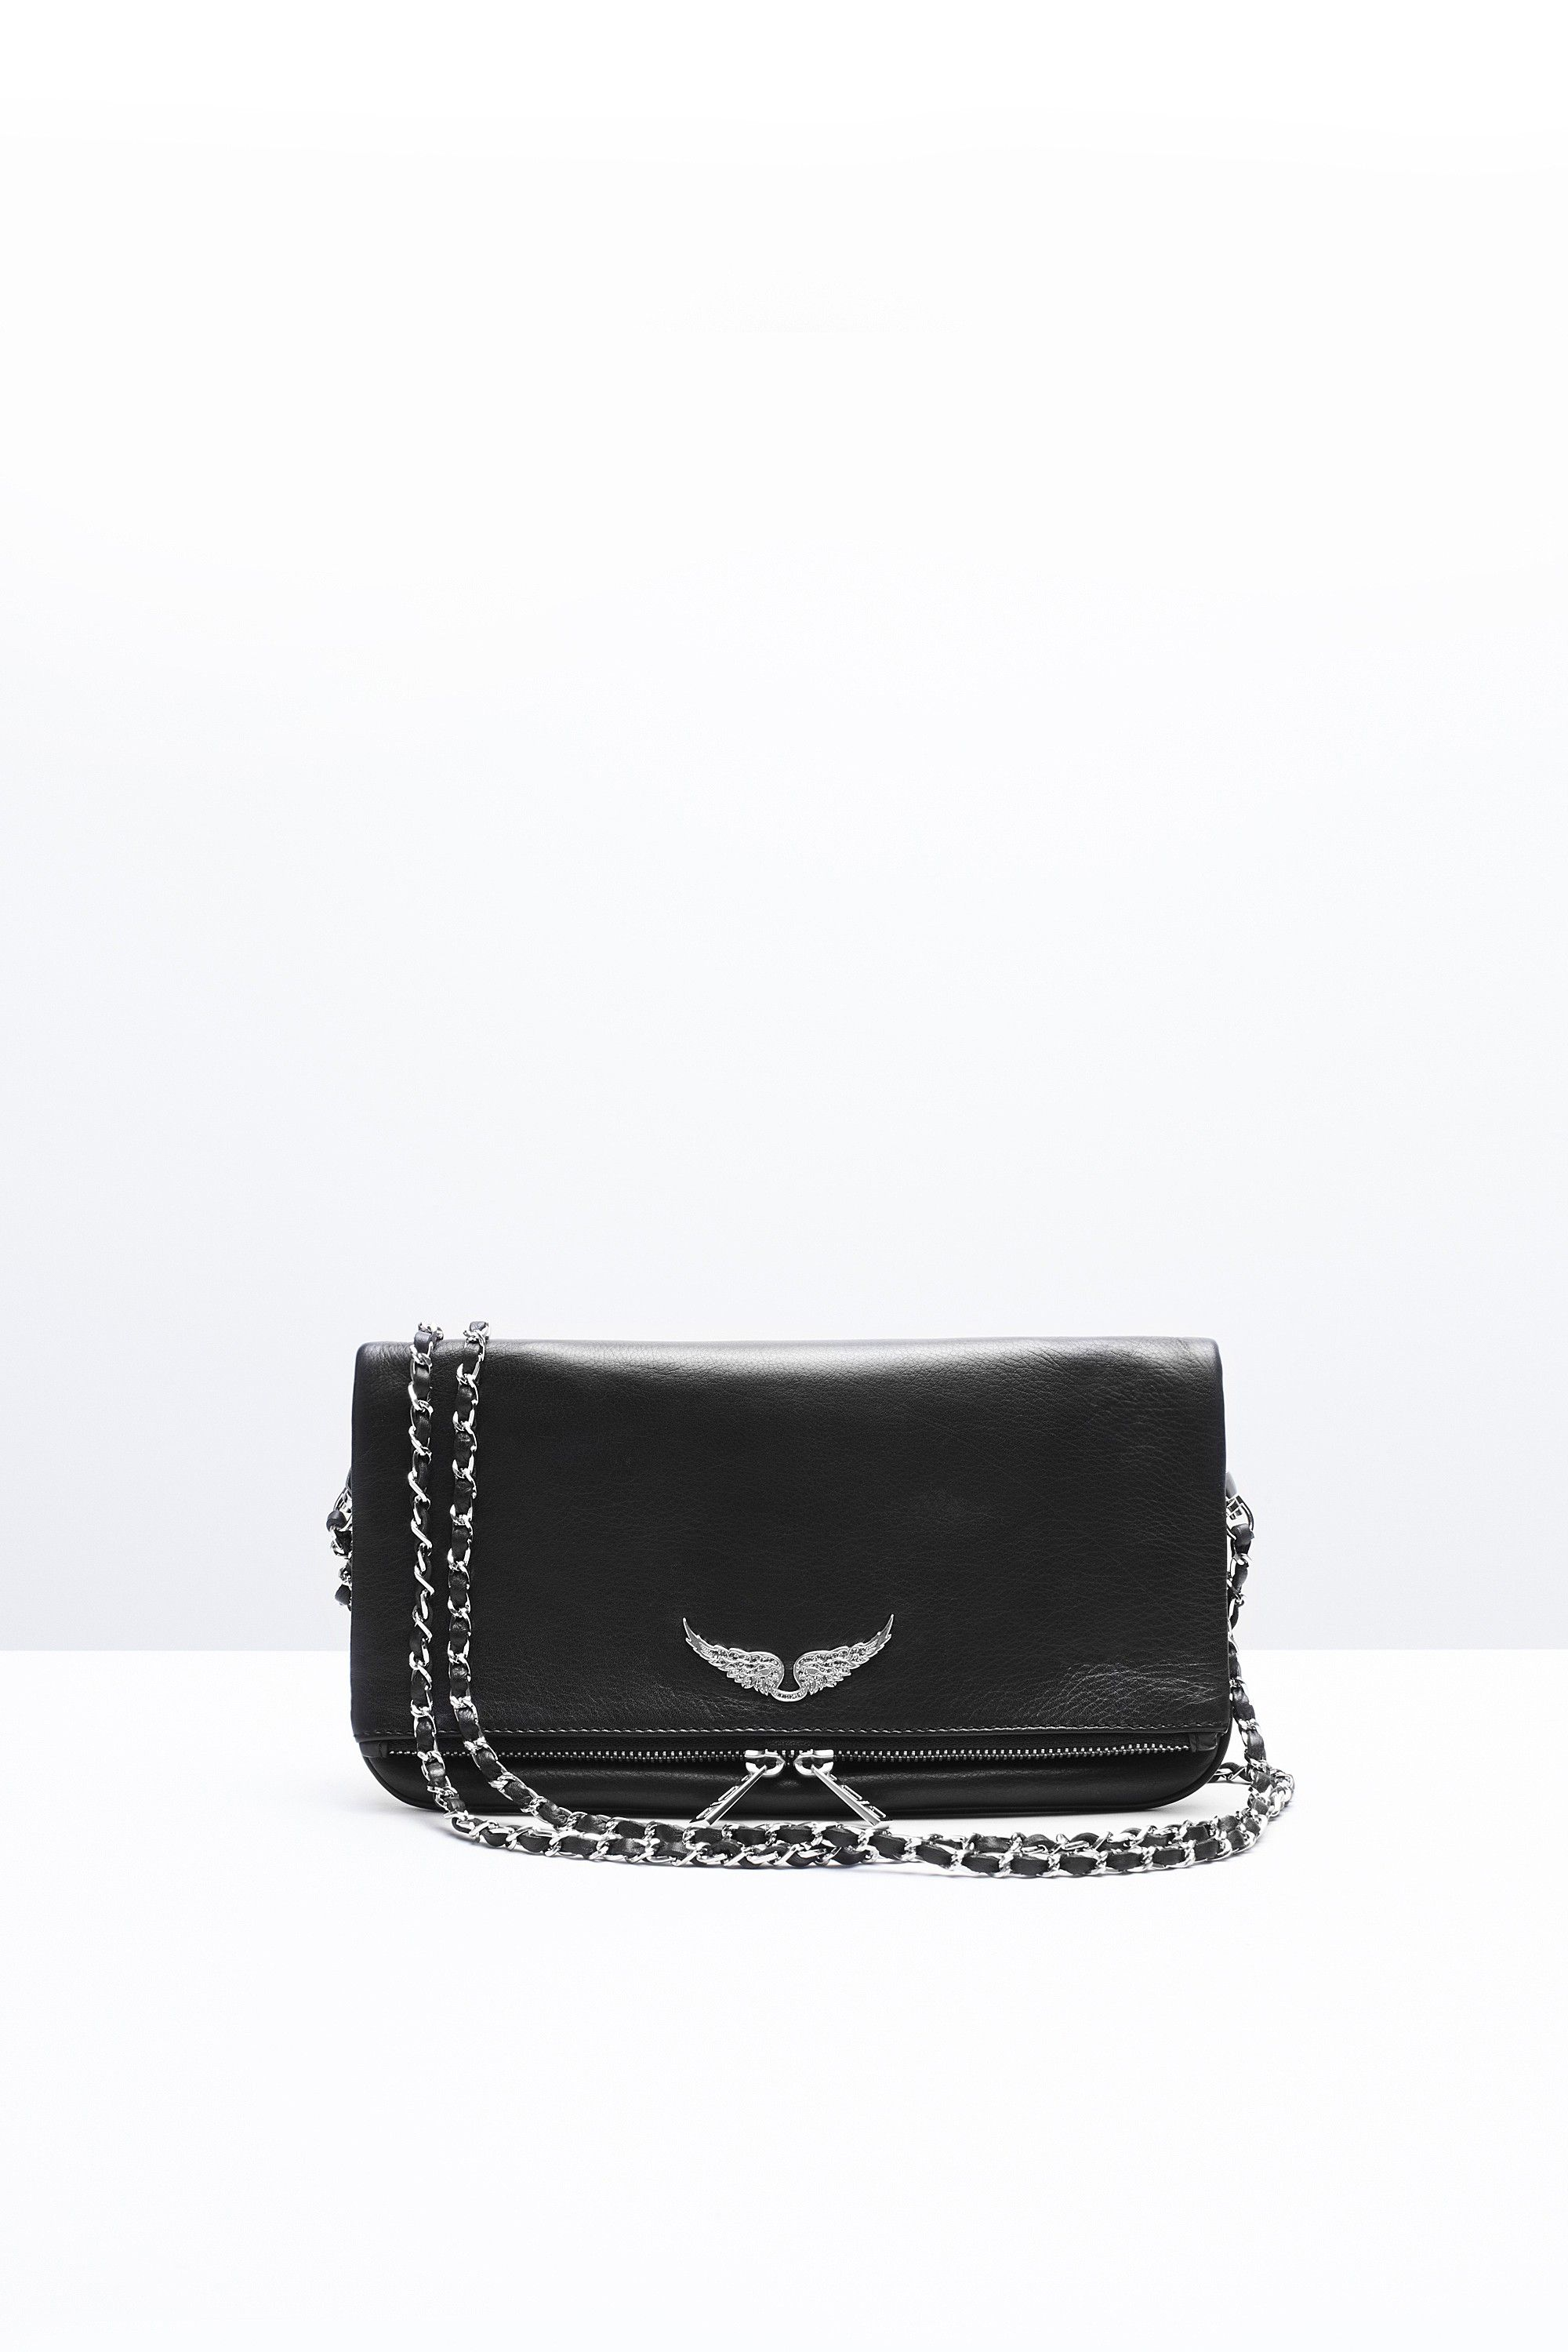 4b0ebcd10 Zadig & Voltaire zip clutch, two removable chains interlaced with leather,  can be worn